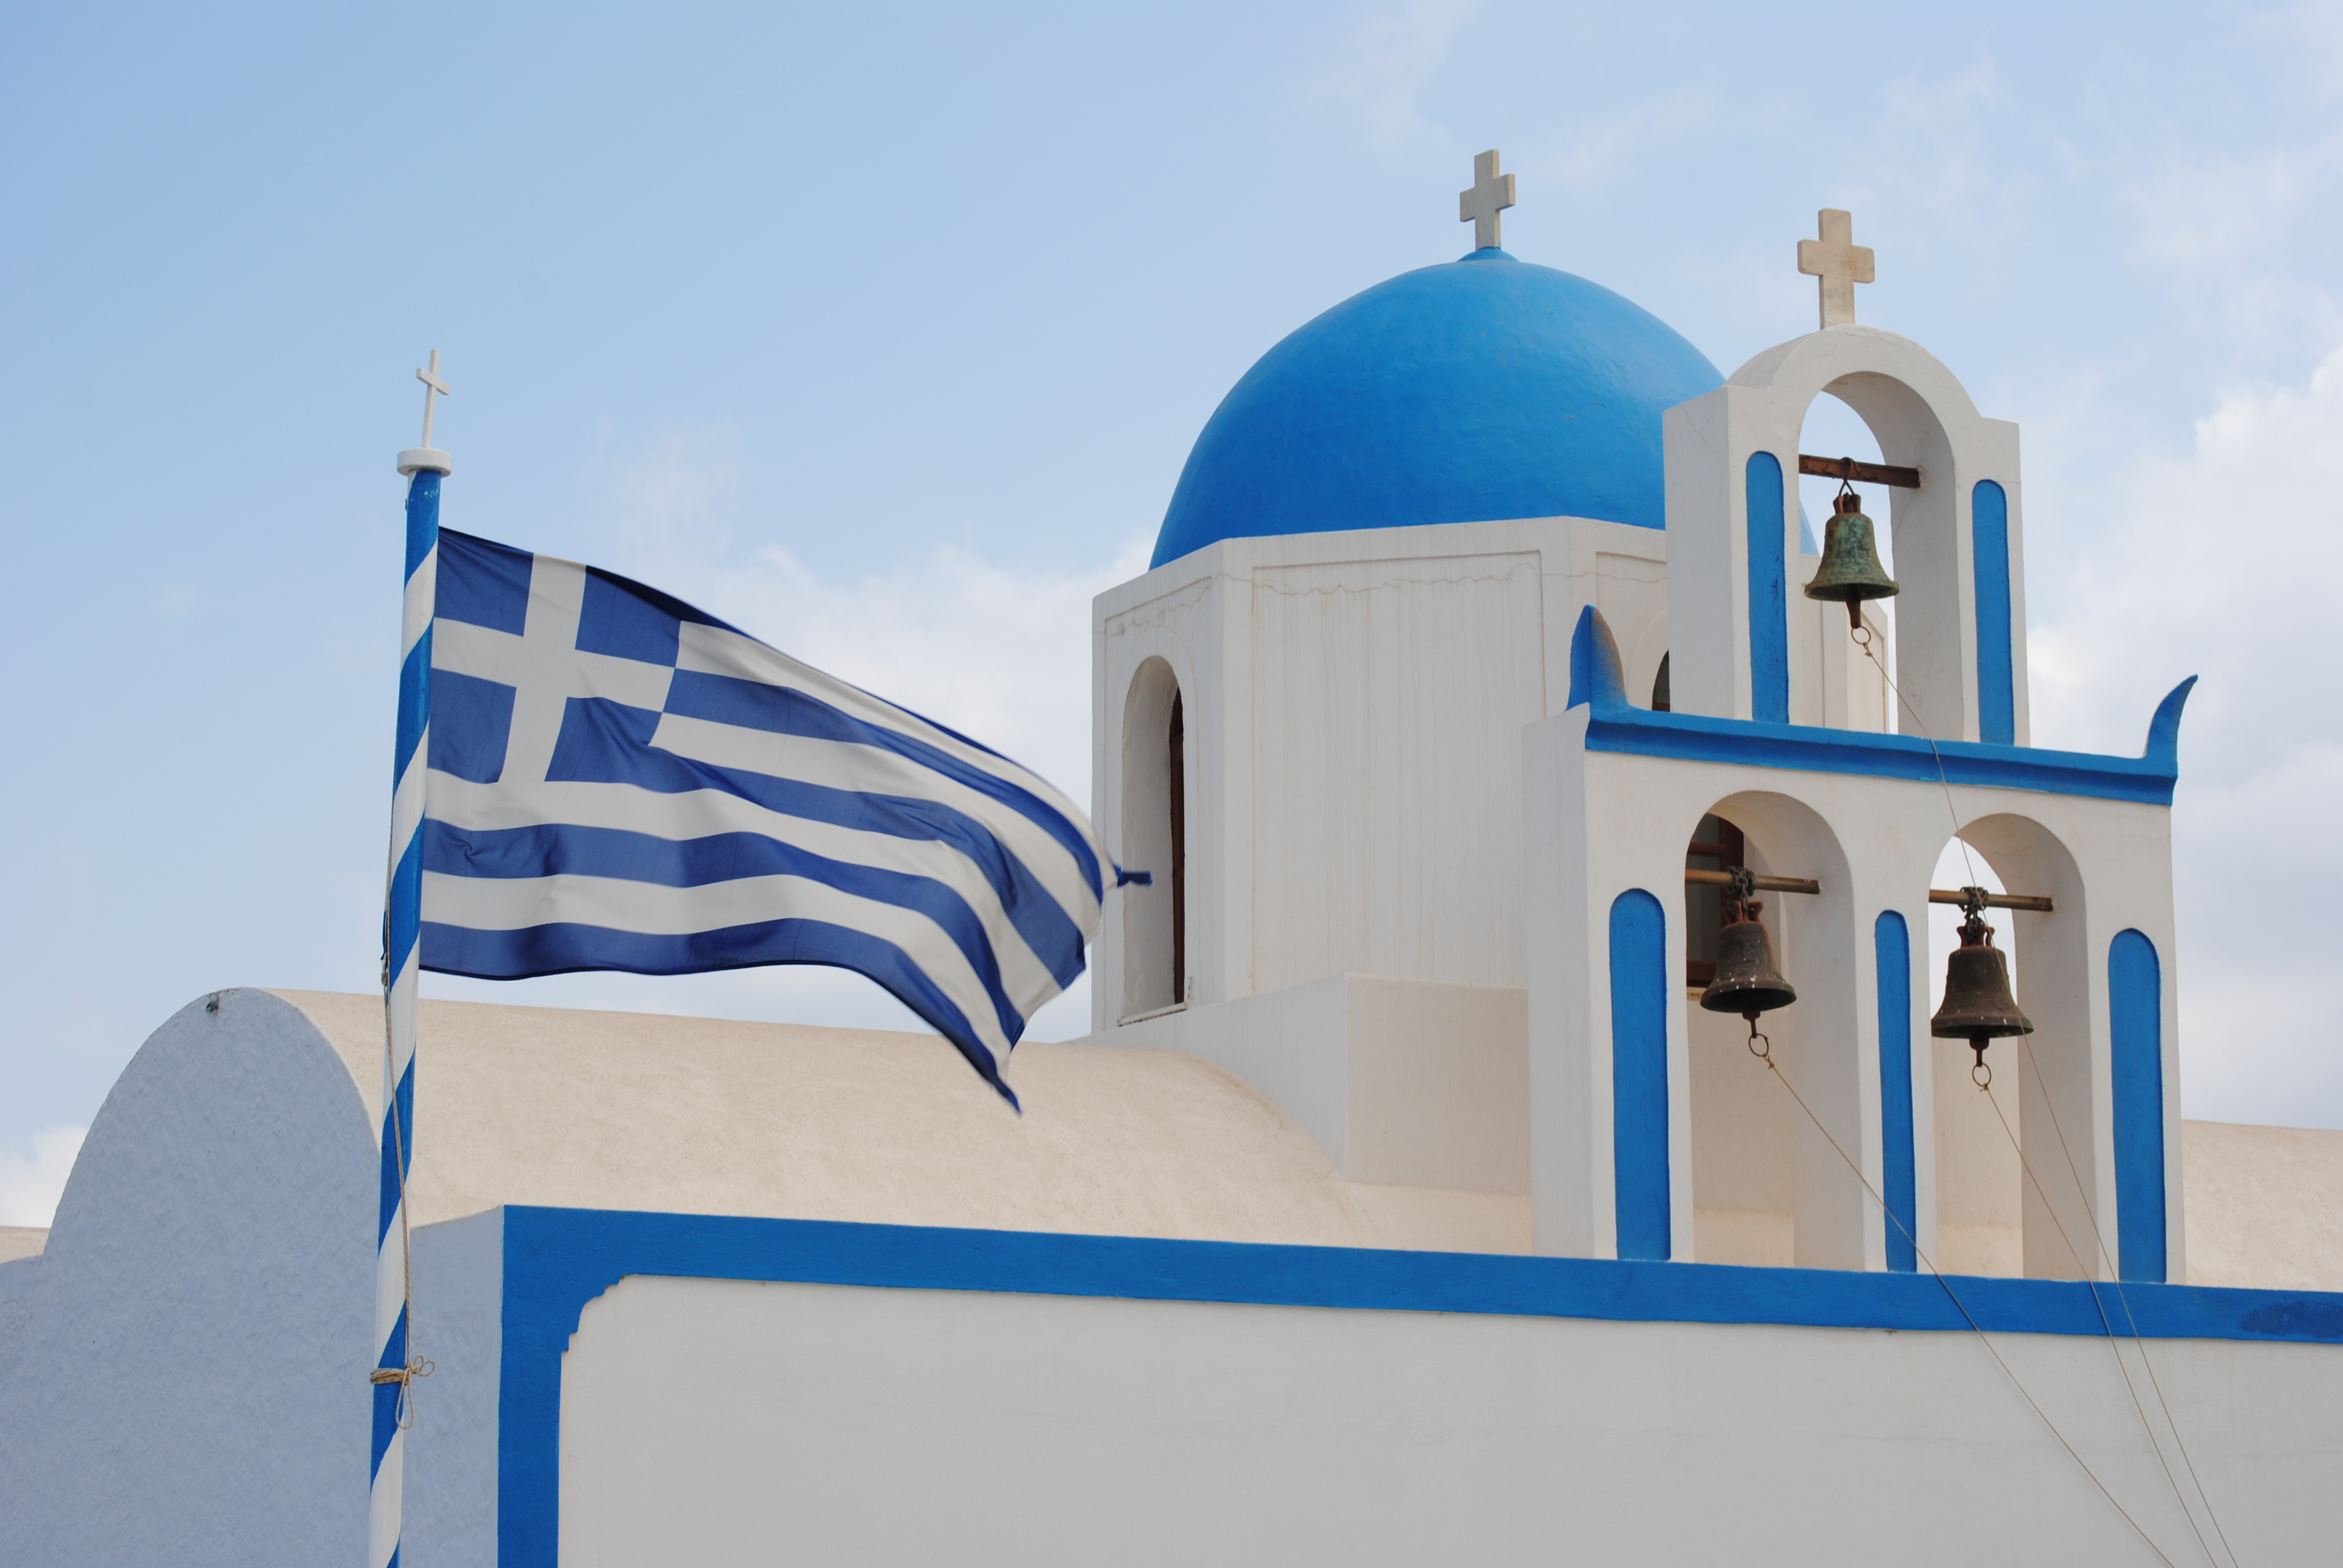 Must Do in Santorini: Snap photos of the iconic blue dome churches